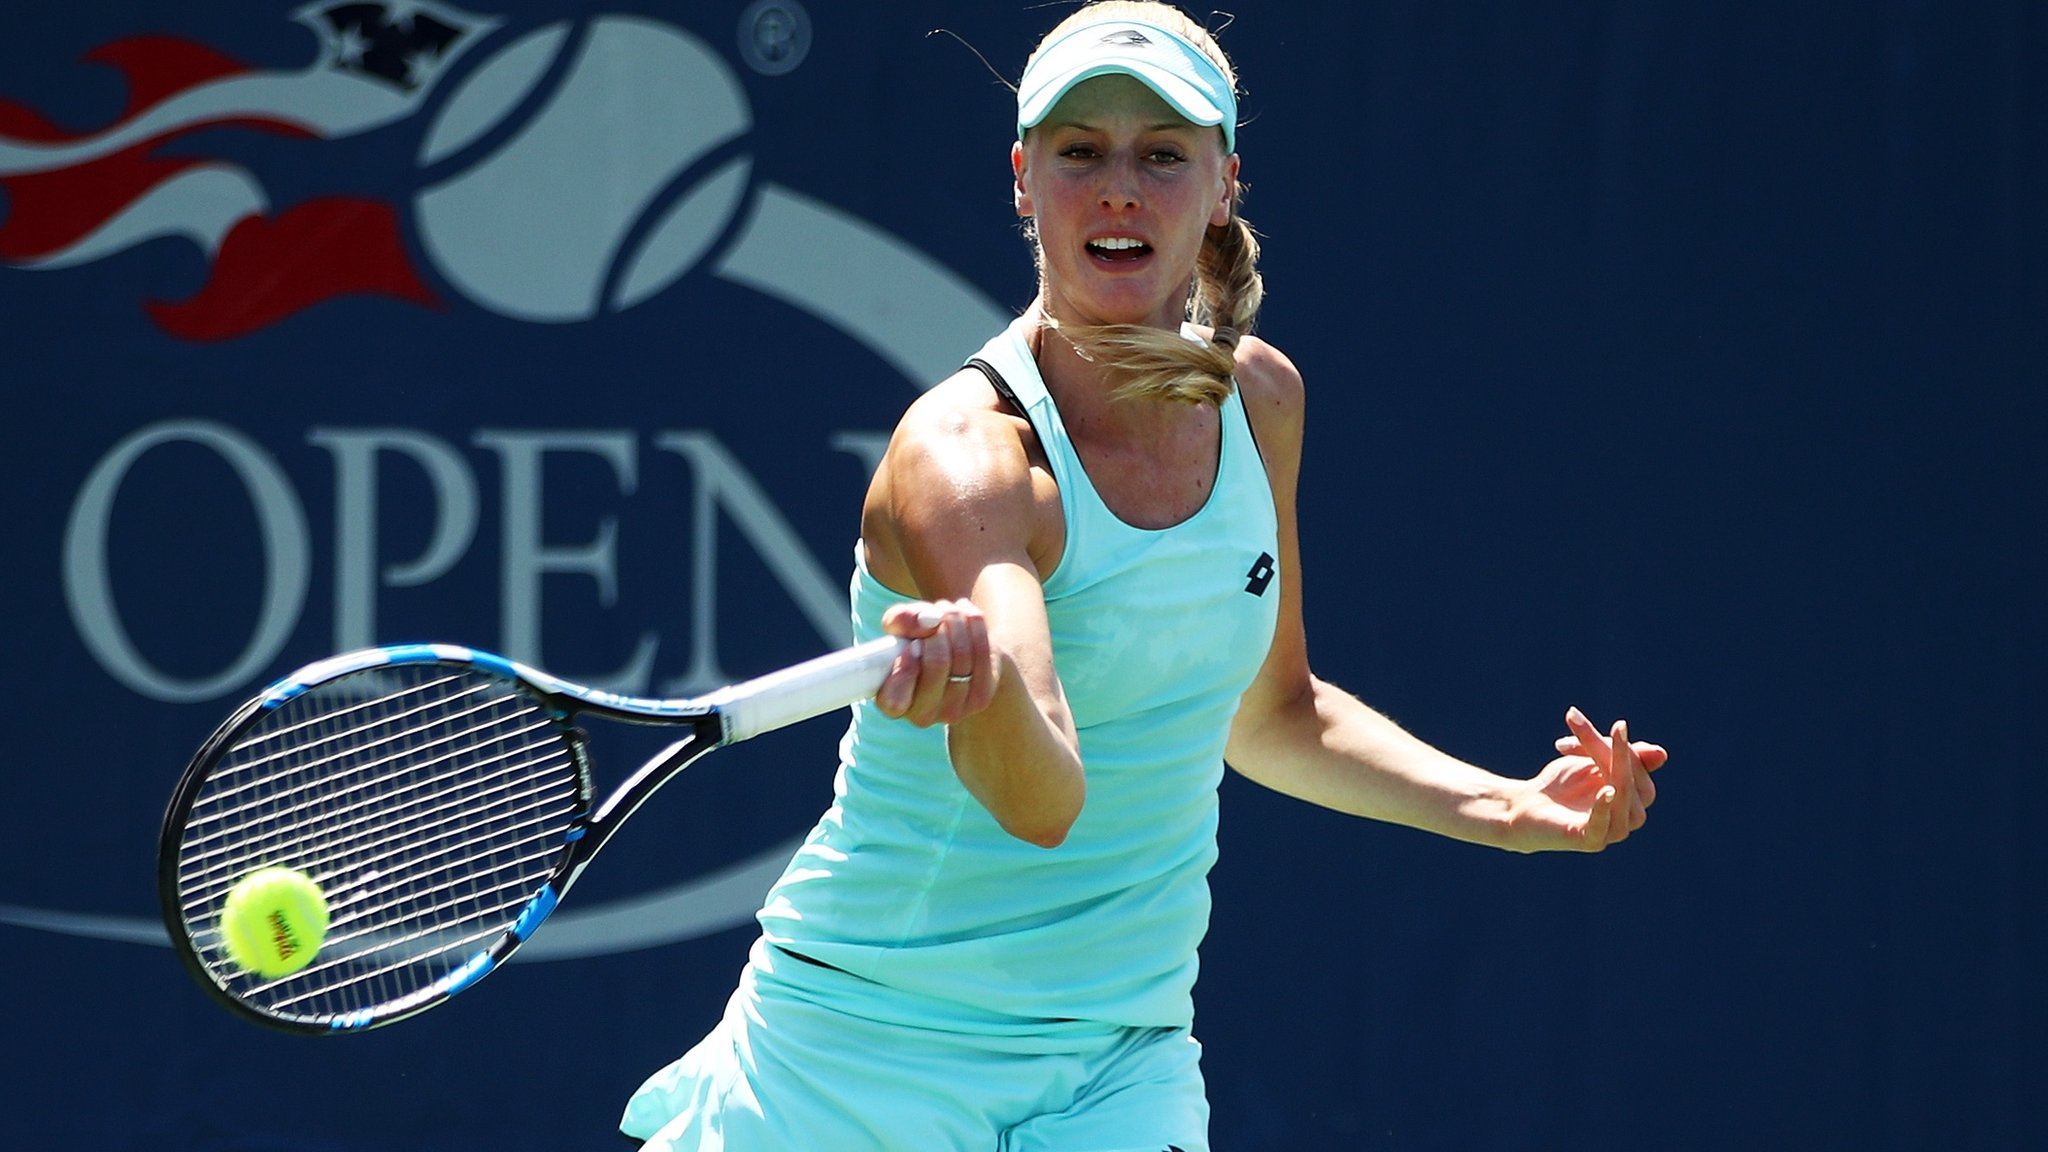 Luxembourg Open: Watson & Broady lose in quarter-finals